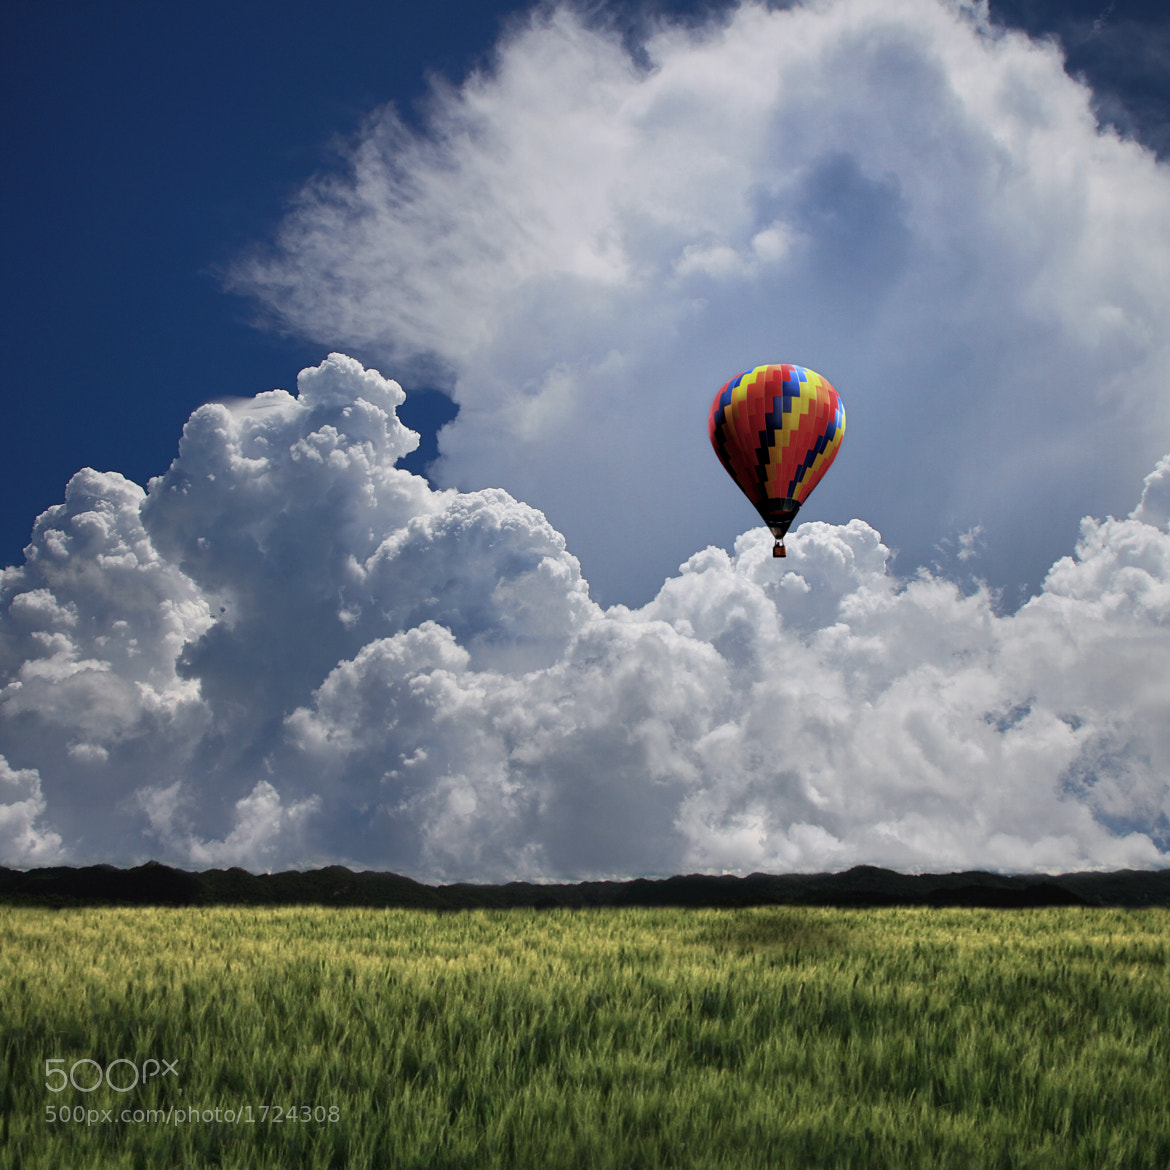 Photograph Would You Like To Ride In My Beautiful Balloon by Carlos Gotay on 500px